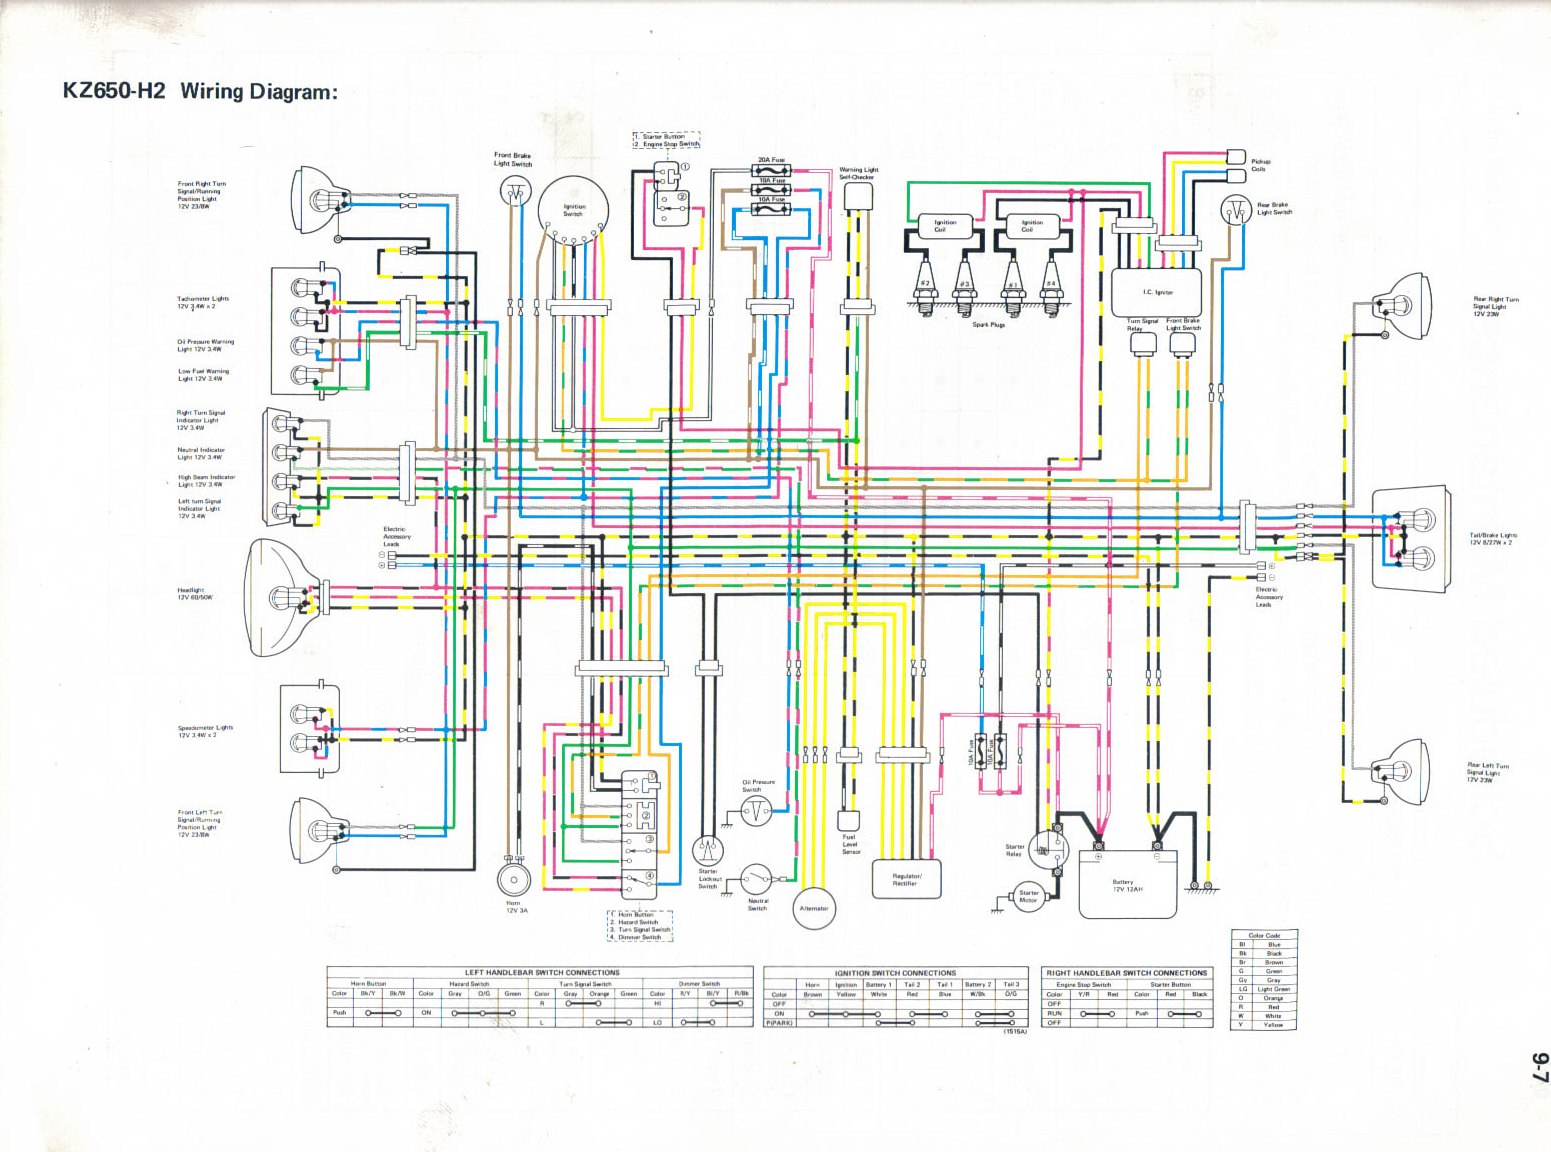 KZ650 H2 kawasaki wiring diagram motorcycle wiring diagrams \u2022 free wiring kawasaki zx9r e1 wiring diagram at alyssarenee.co